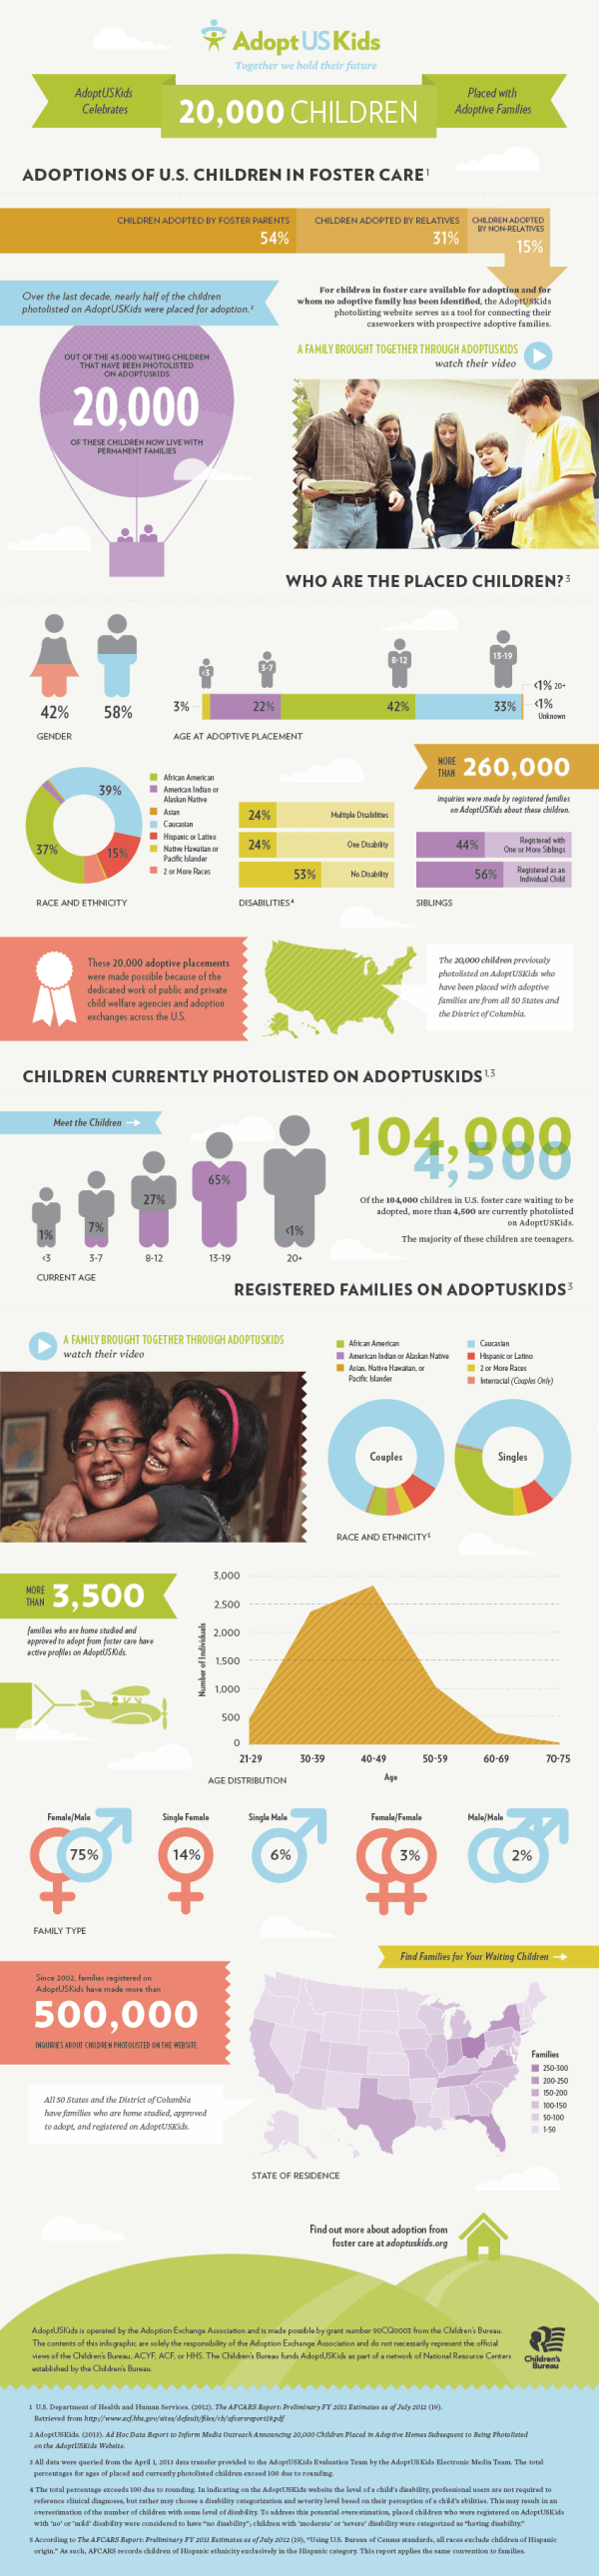 Infographic for AdoptUSKids Celebrating 20,000 Children Placed With Adoptive Families